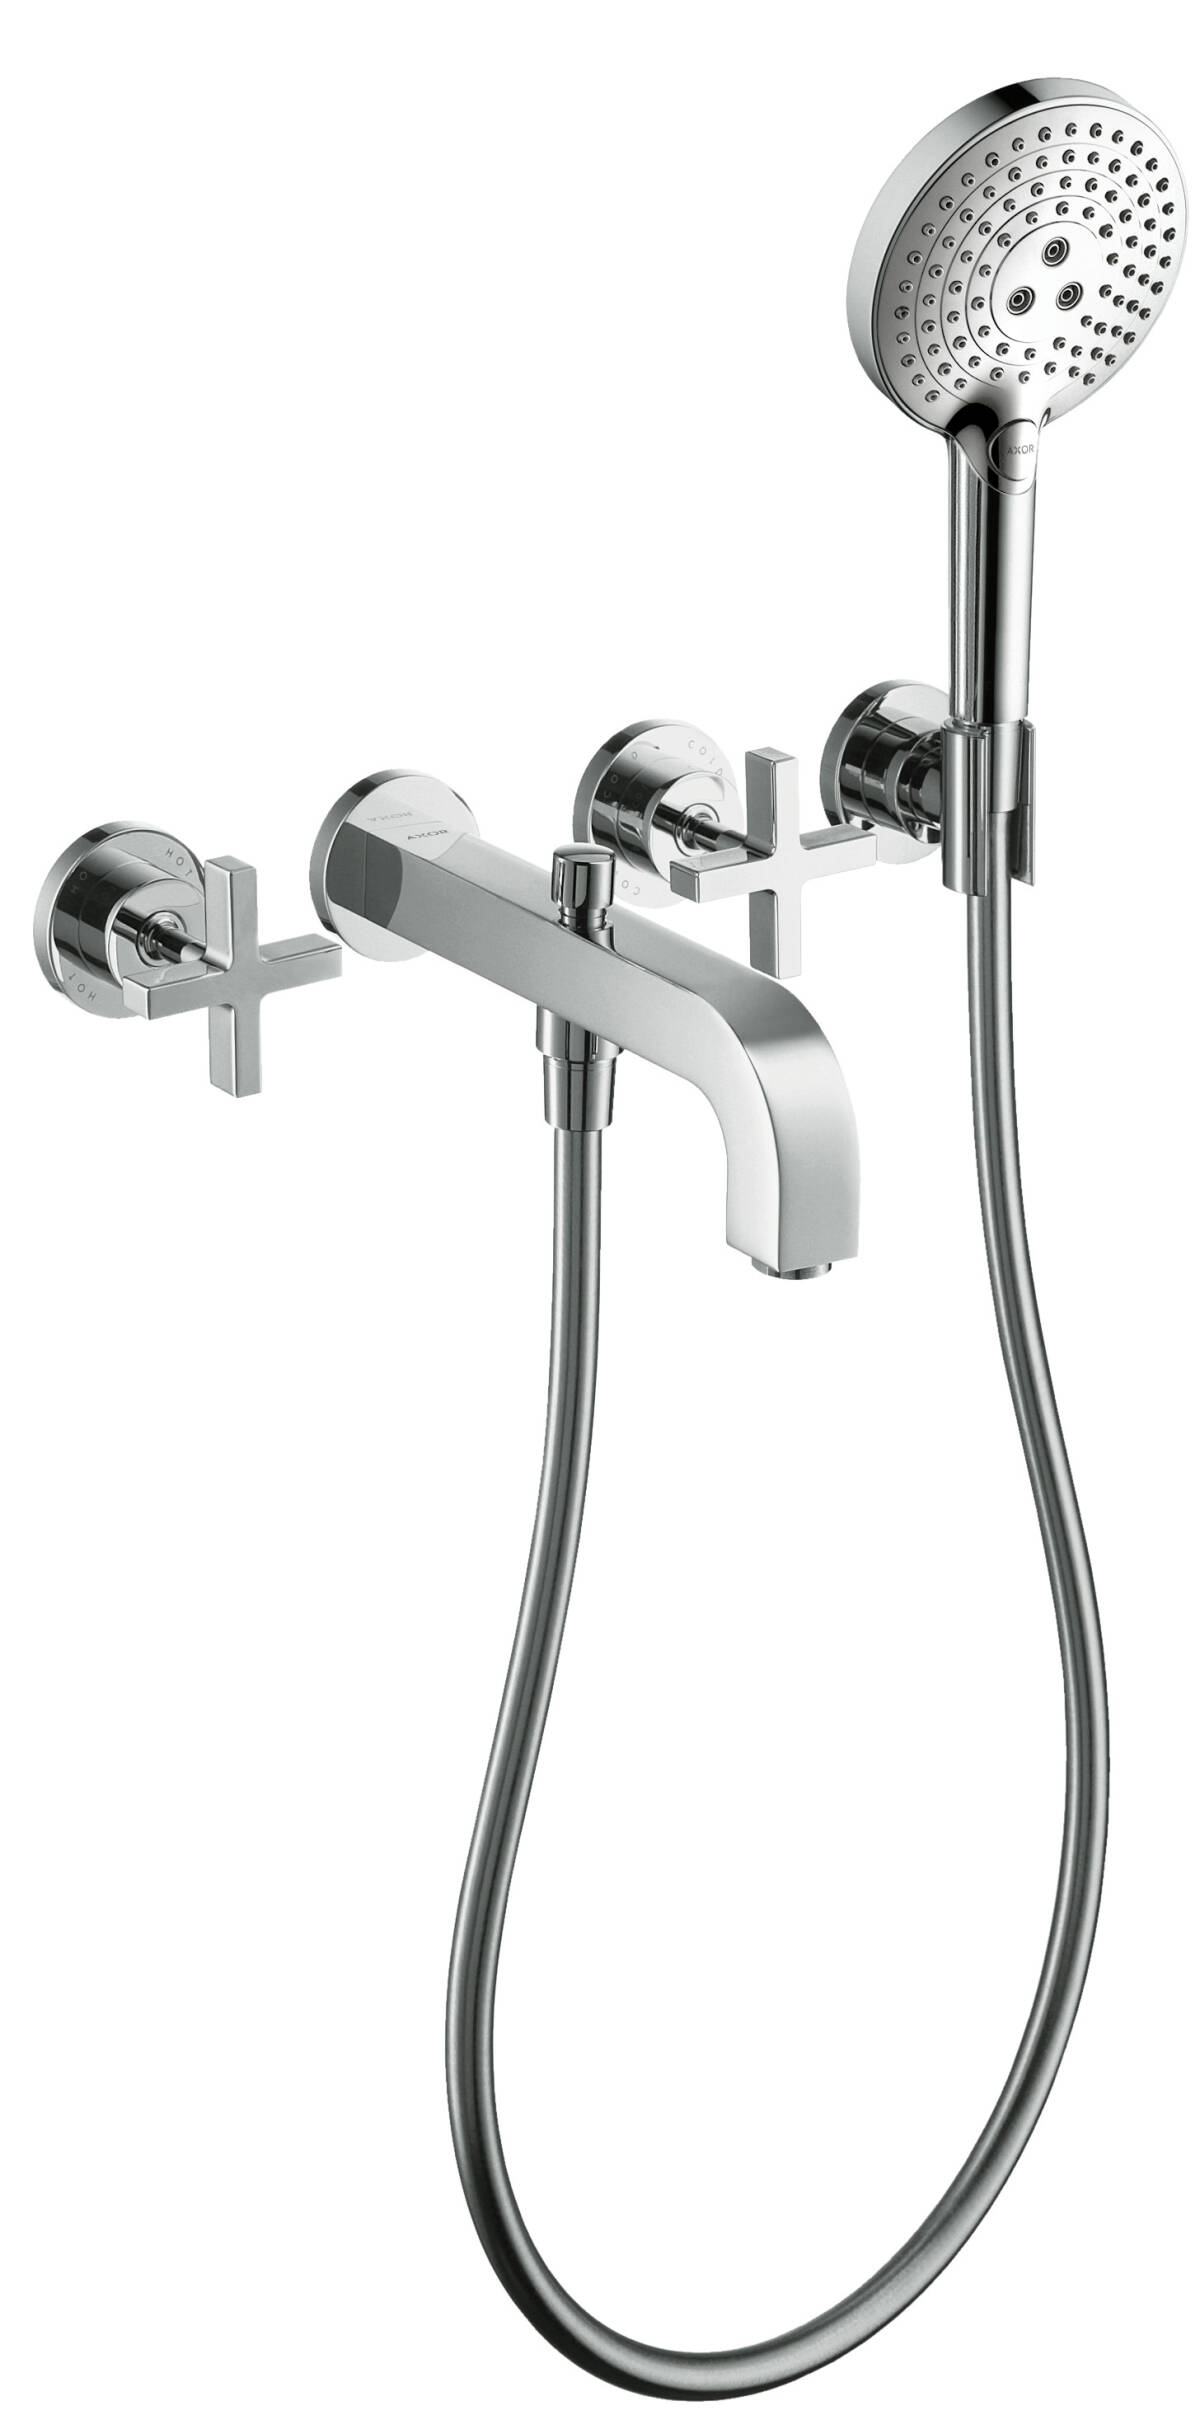 3-hole bath mixer for concealed installation wall-mounted with cross handles and escutcheons, Brushed Bronze, 39447140